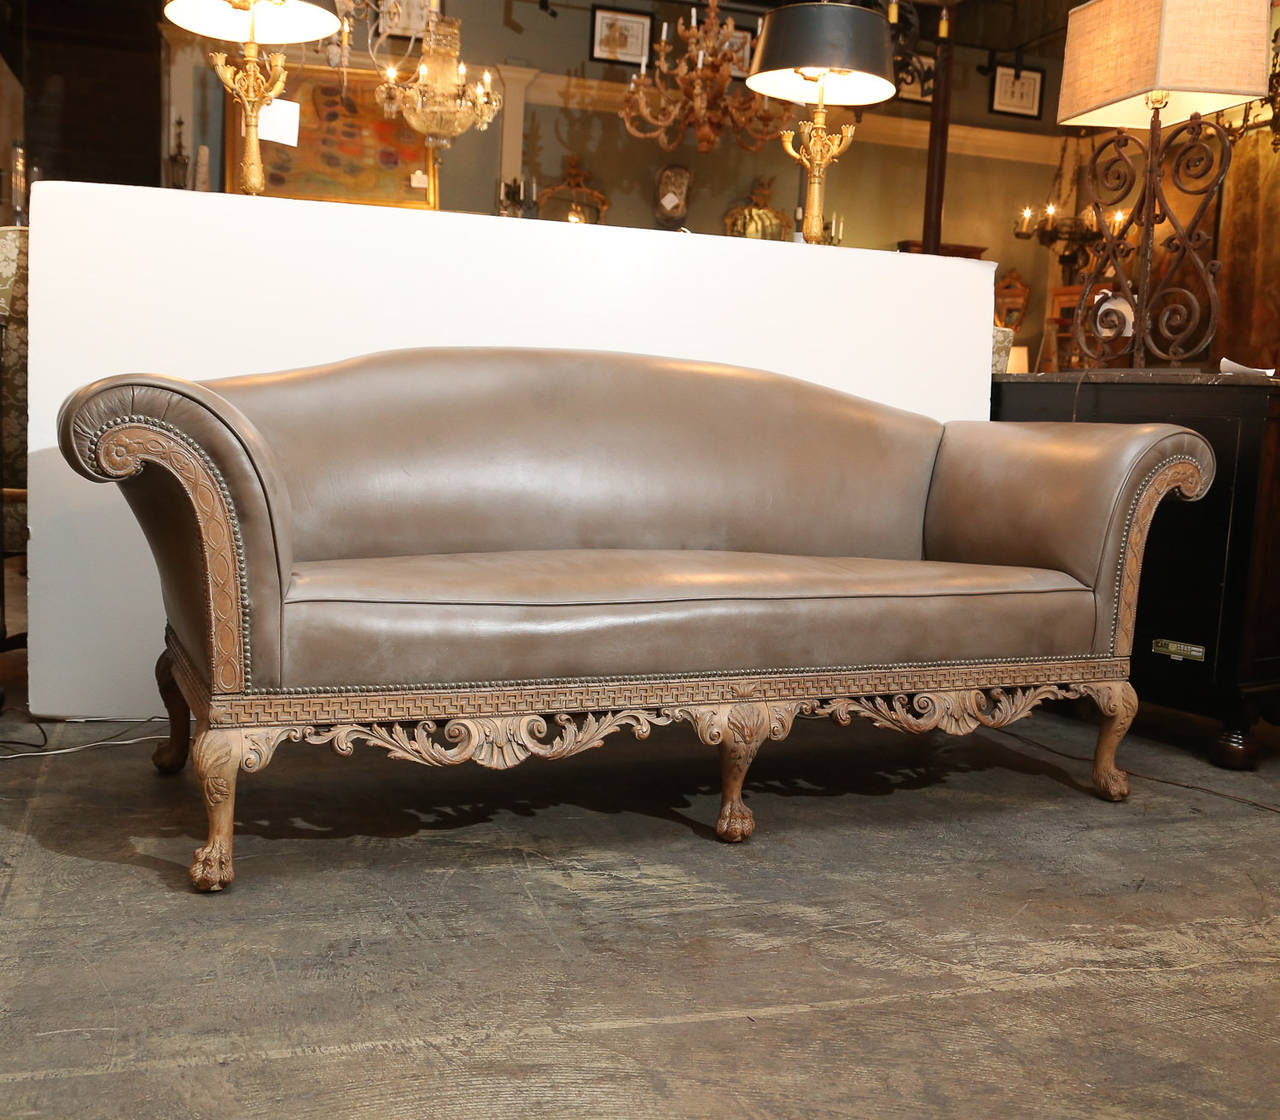 Chippendale sofaschippendale sofas - George Ii Style Irish Chippendale Sofa 2